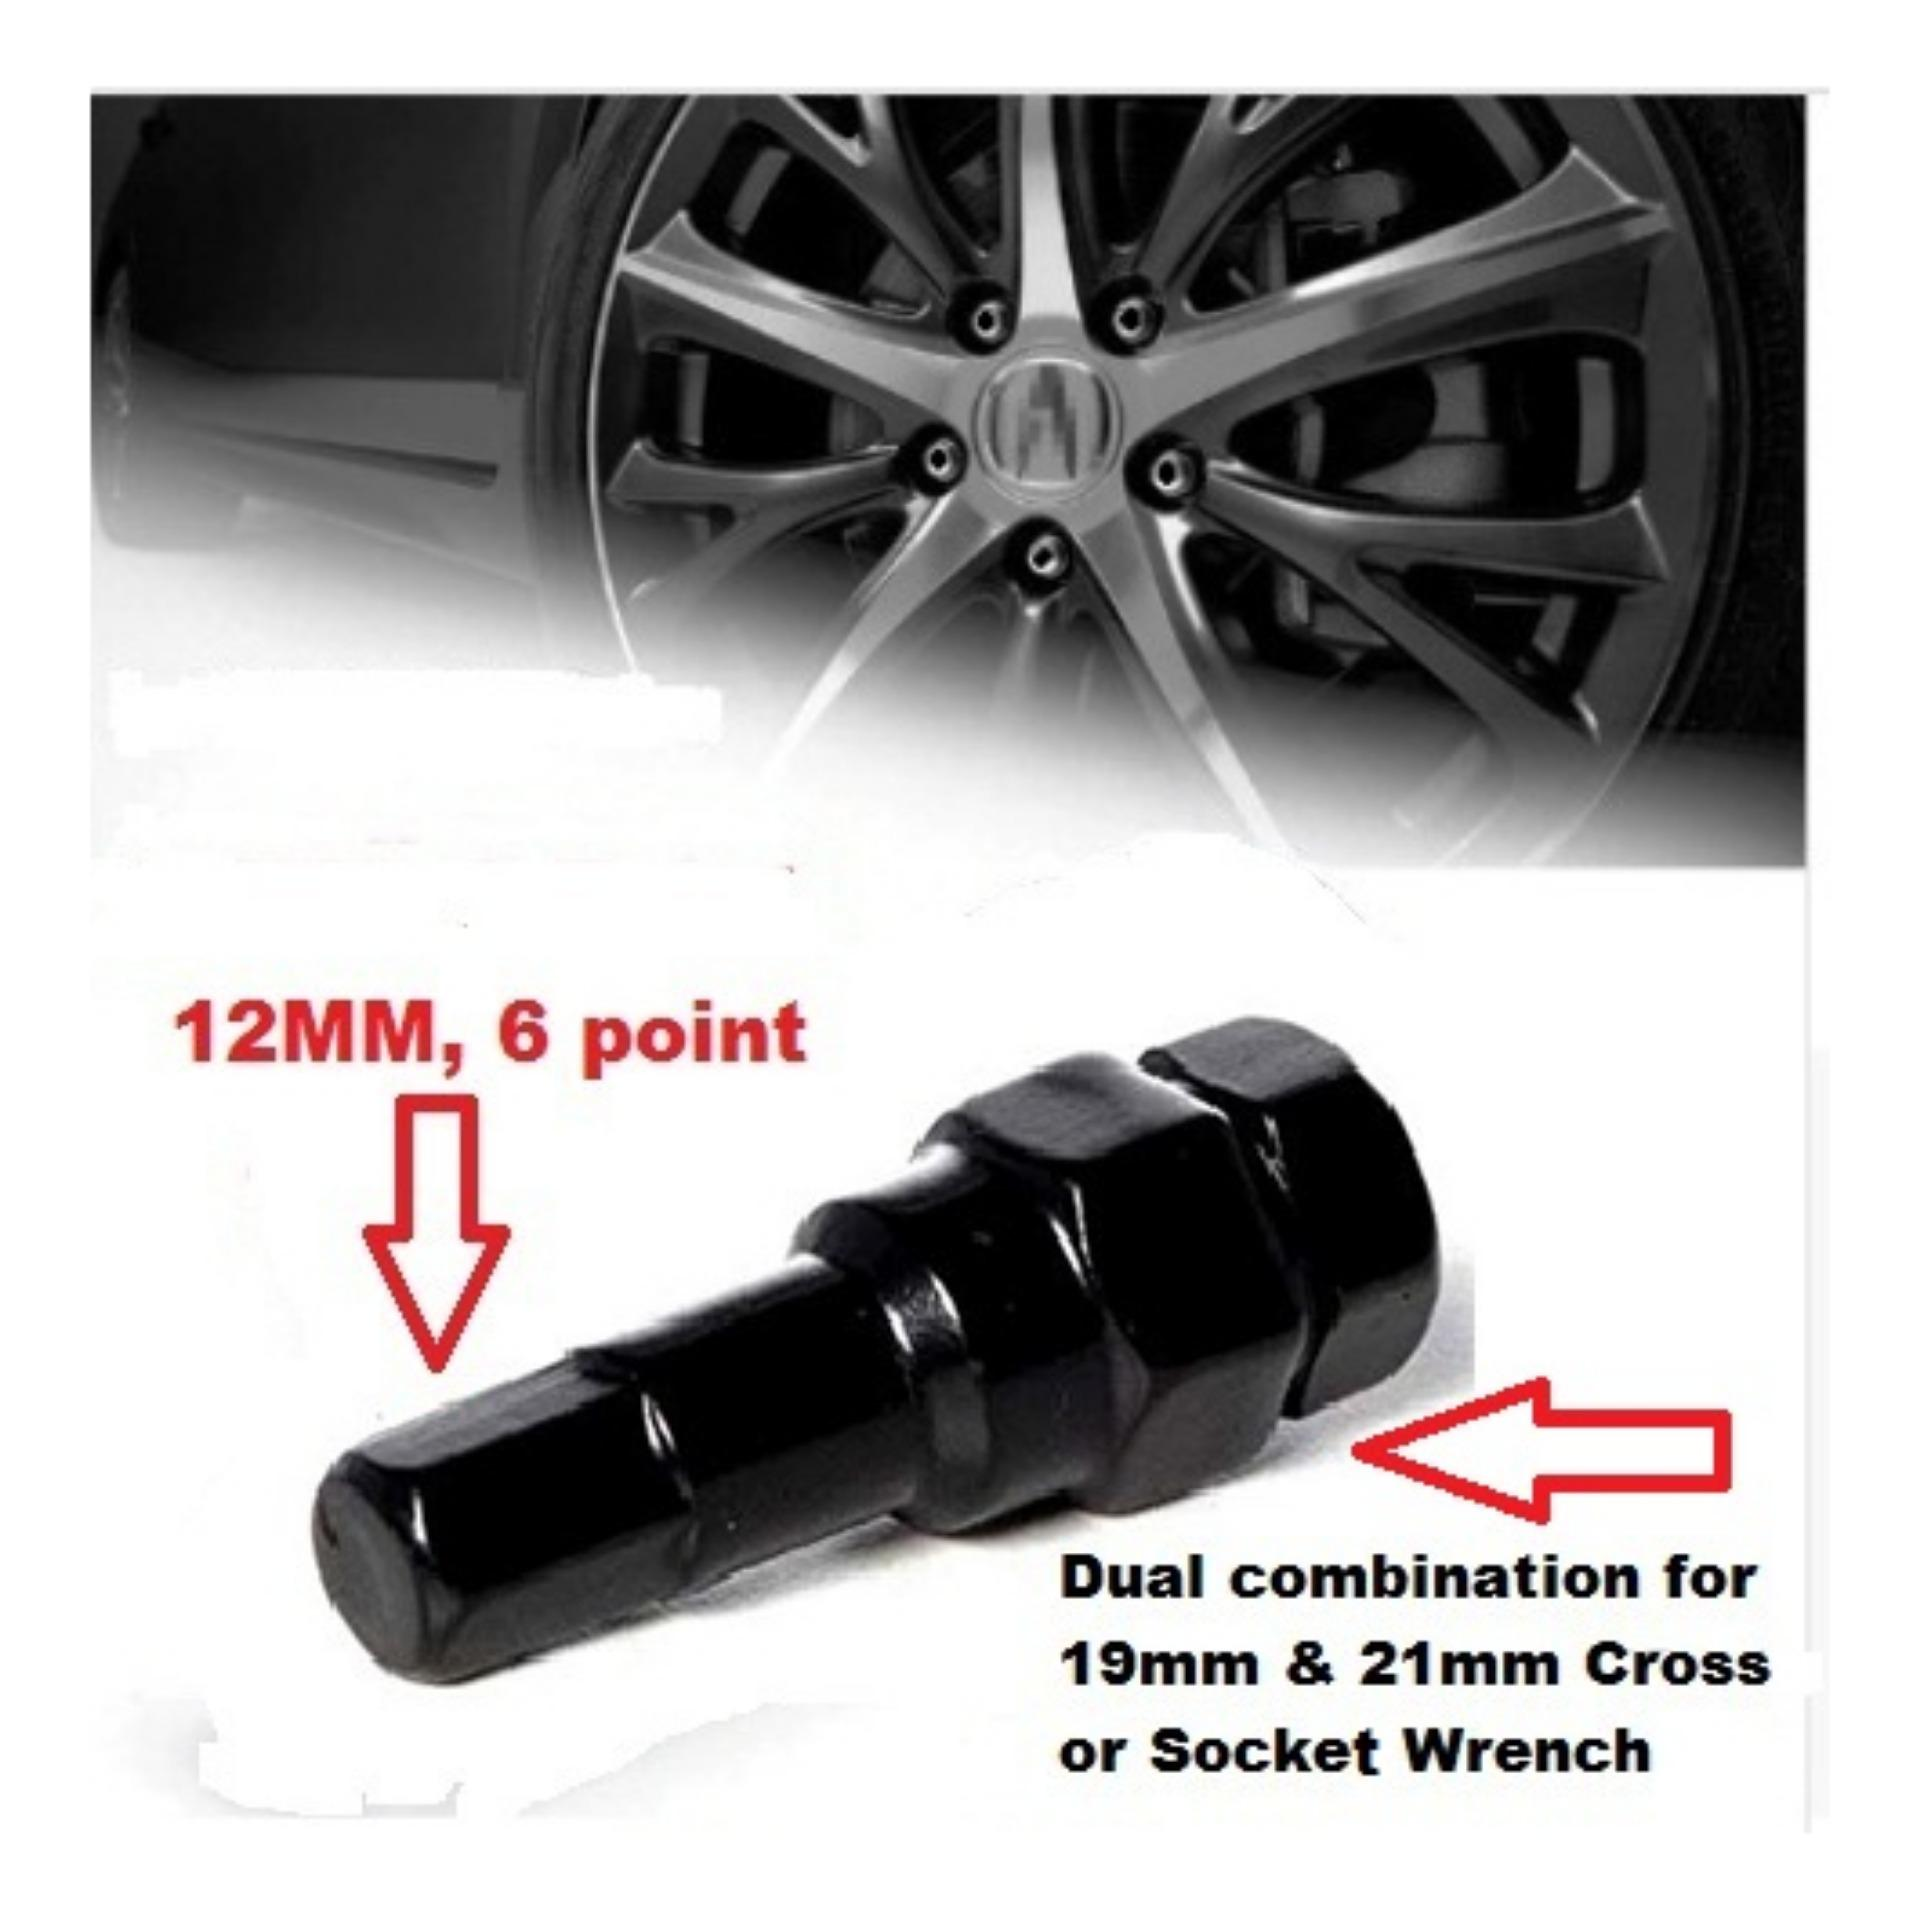 Fuji H/t Lugnuts / Wheel Nuts Inner Hex Key Black Set Of 1pc By Tireport Service Center.